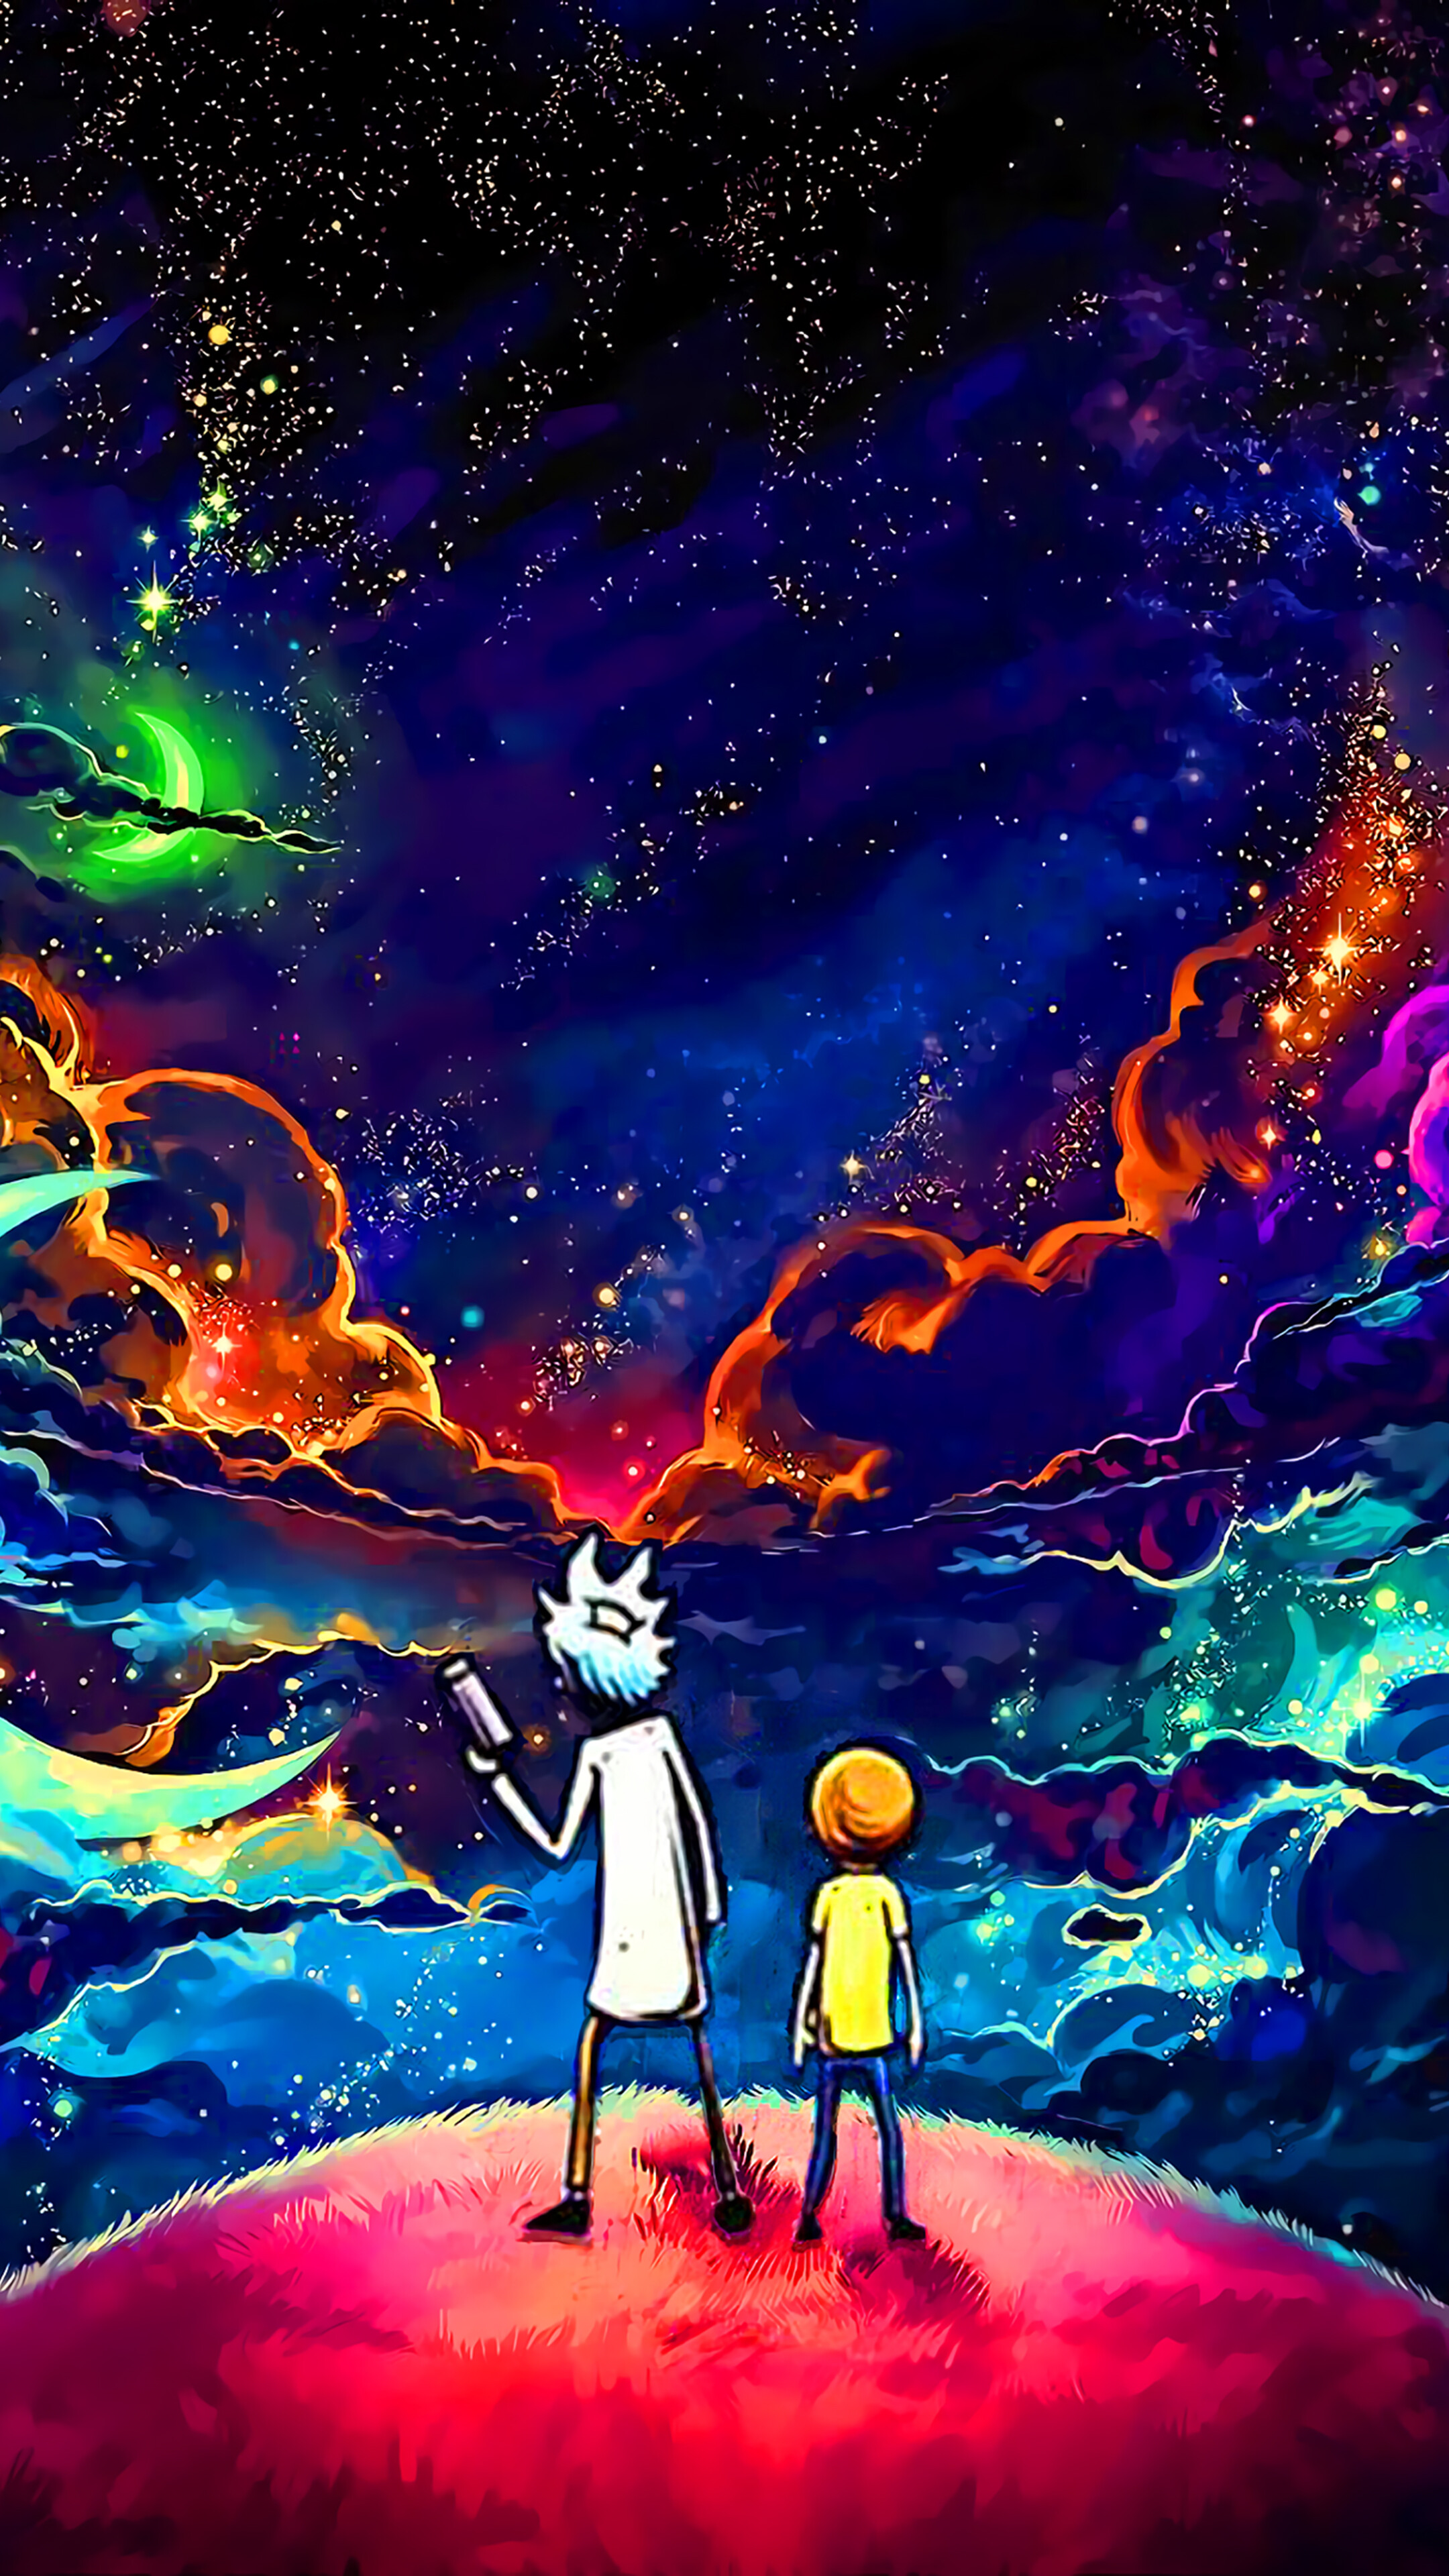 Rick and Morty Sky Stars 4K Wallpaper 5118 2160x3840